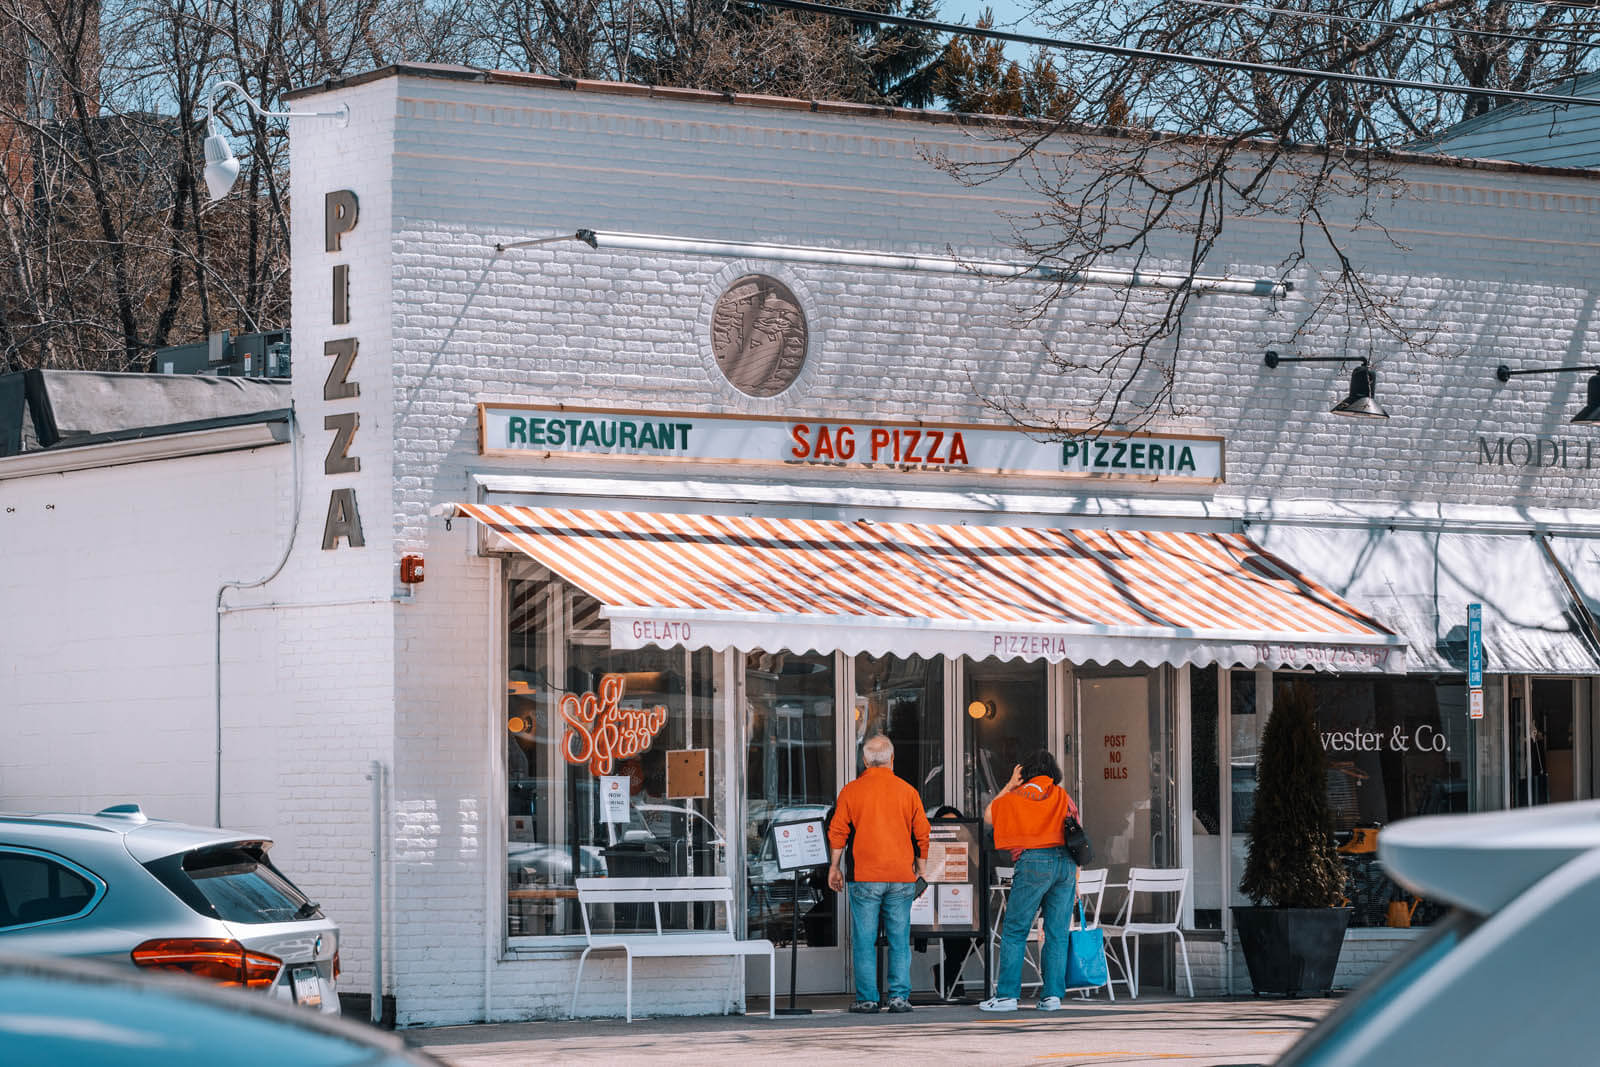 adorable pizza shop in Sag Harbor one of the most charming towns in the Hamptons New York